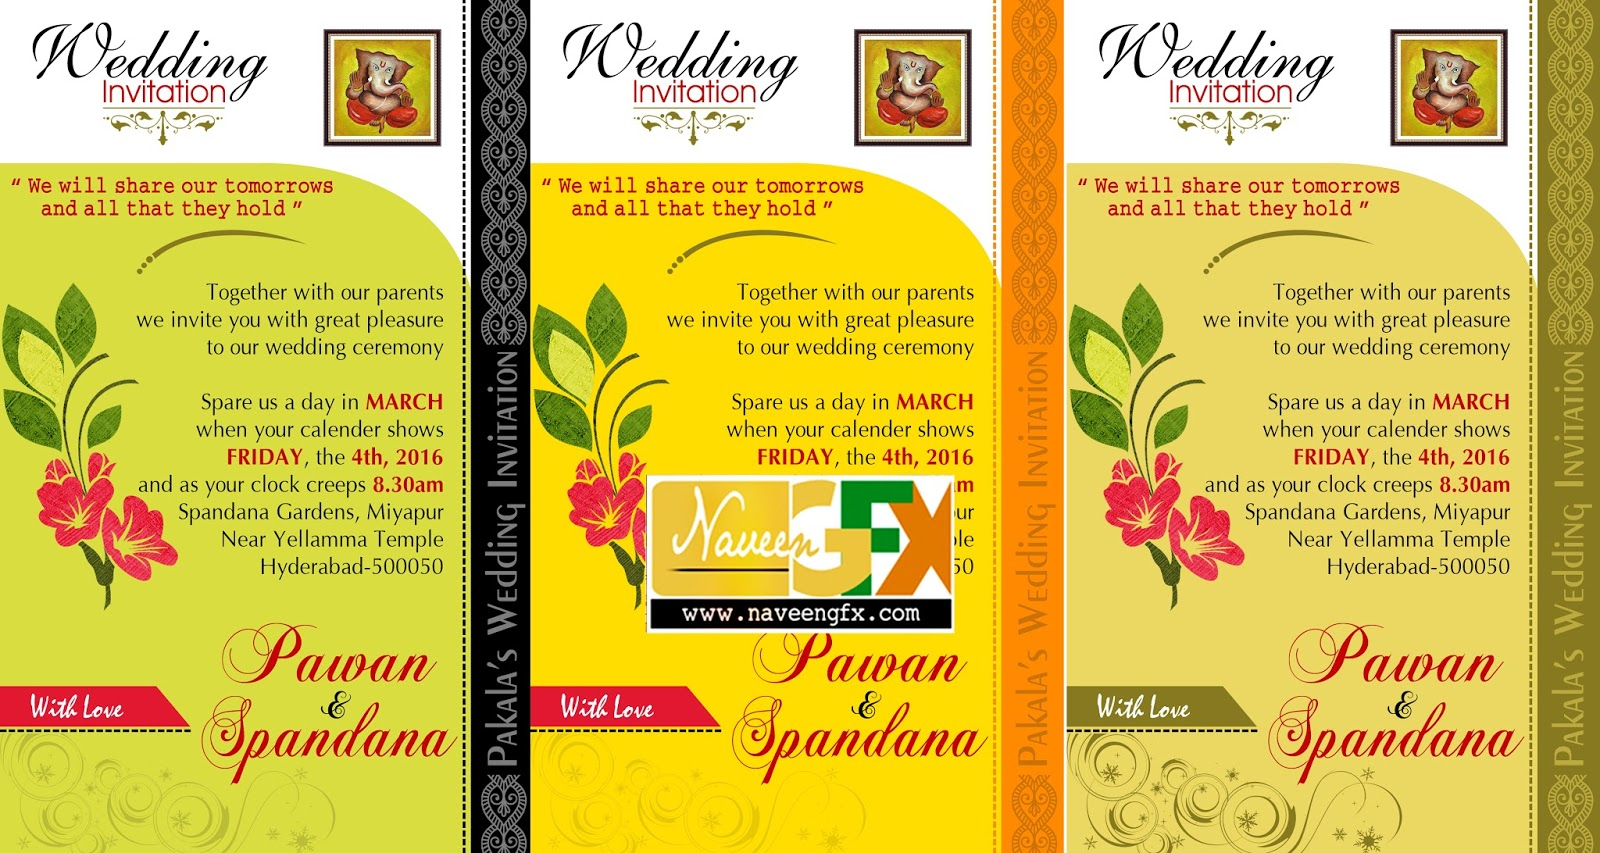 Personal wedding invitation wordings for friends for indian personal wedding invitation cards psd templates free downloads stopboris Image collections